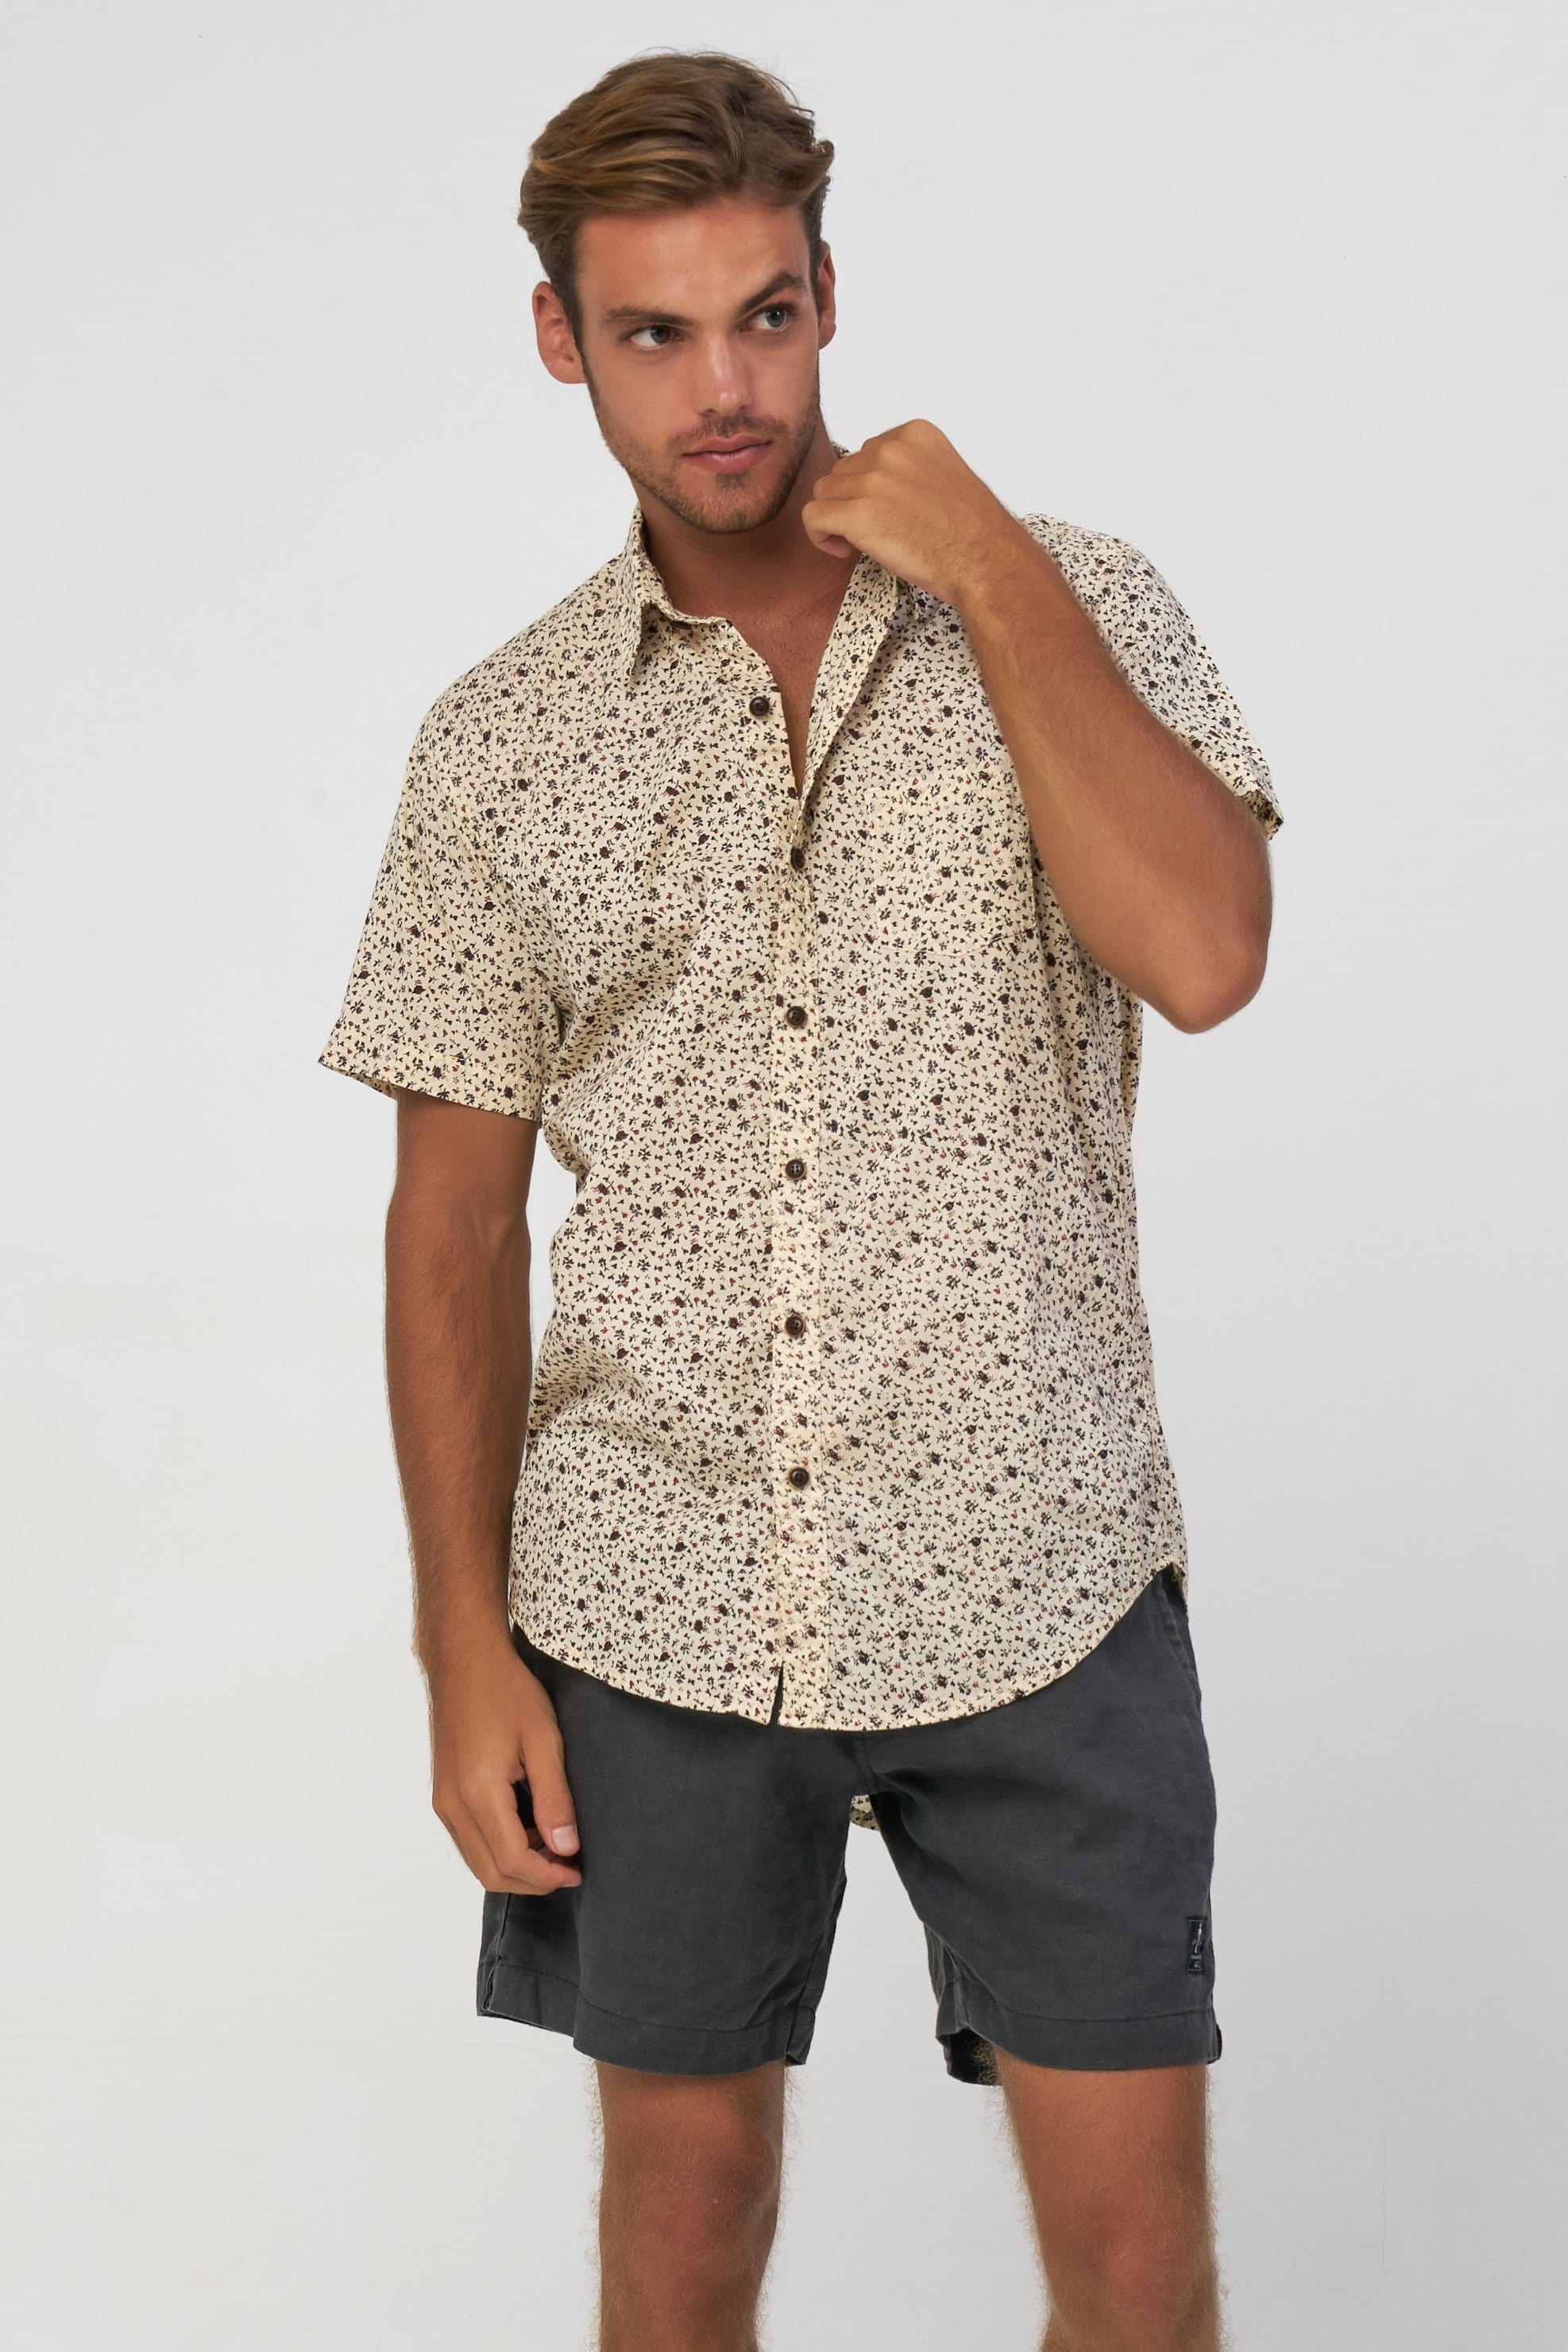 Passo Shirt - Man Shirt - LOST IN PARADISE